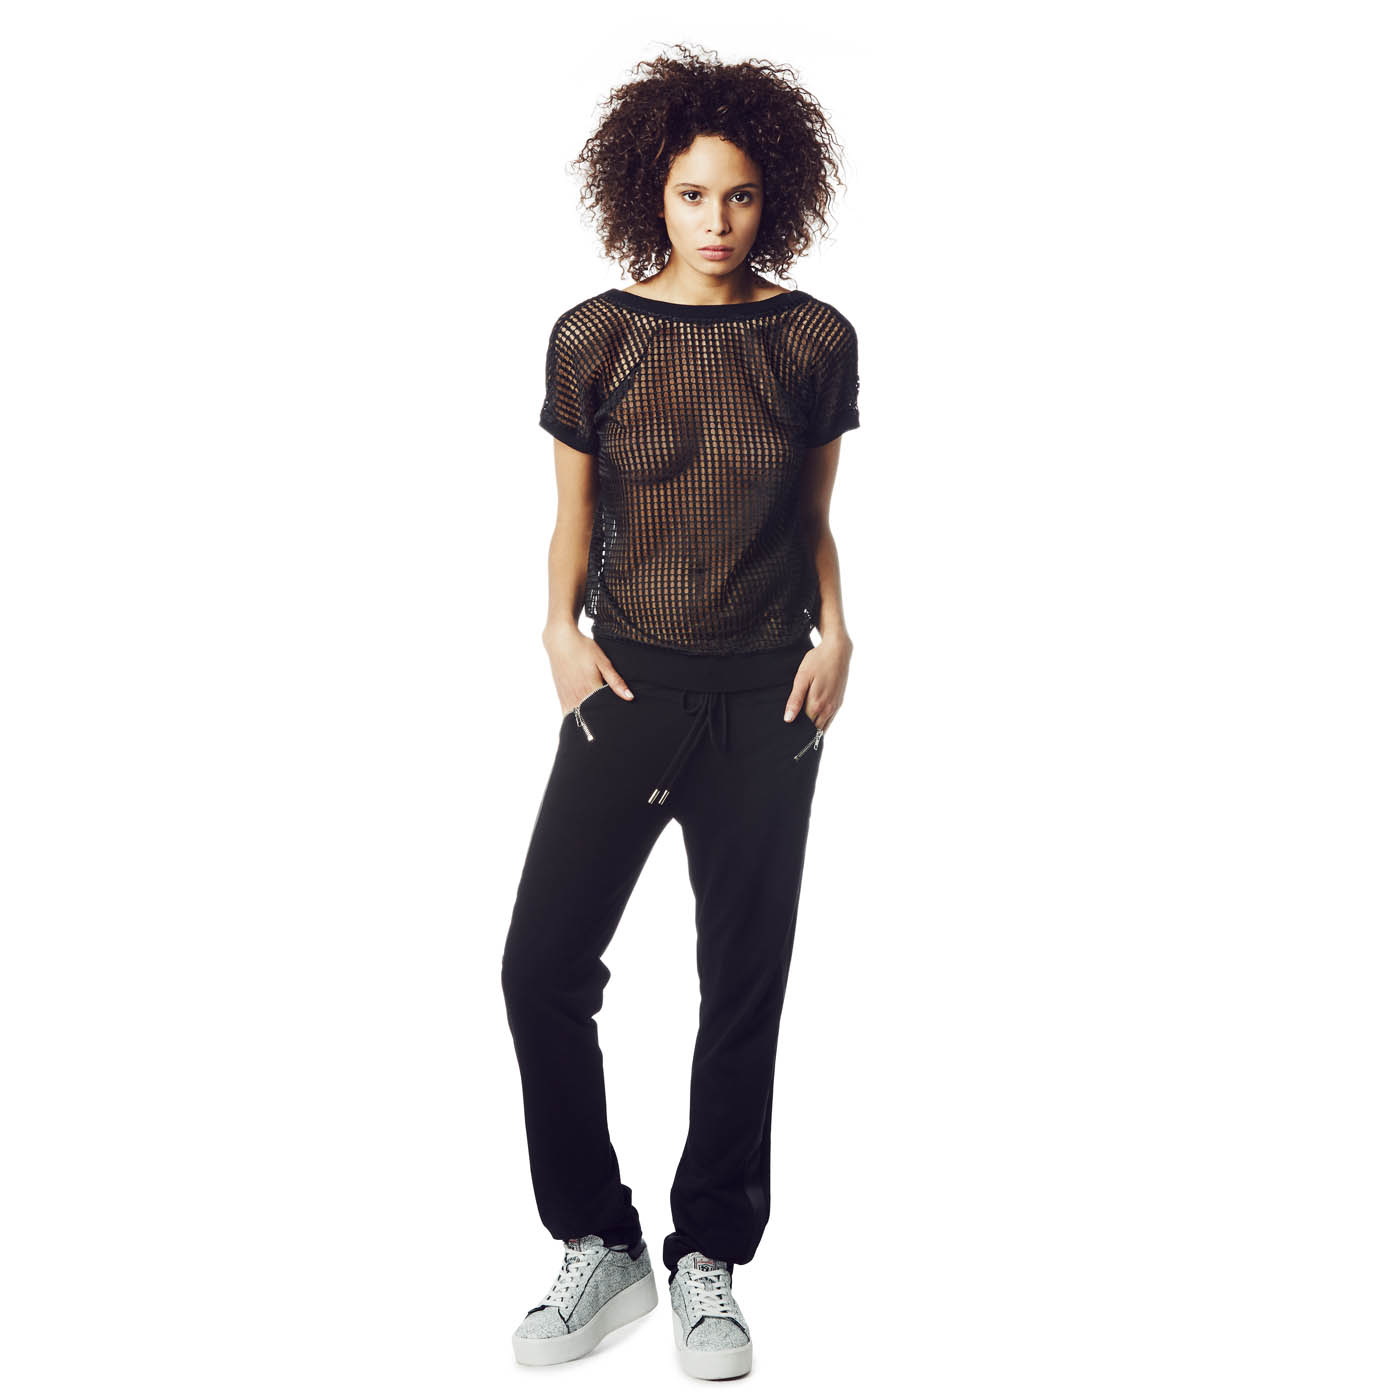 Ash Studio Paris  Century Top Black Mesh 265010 (001)